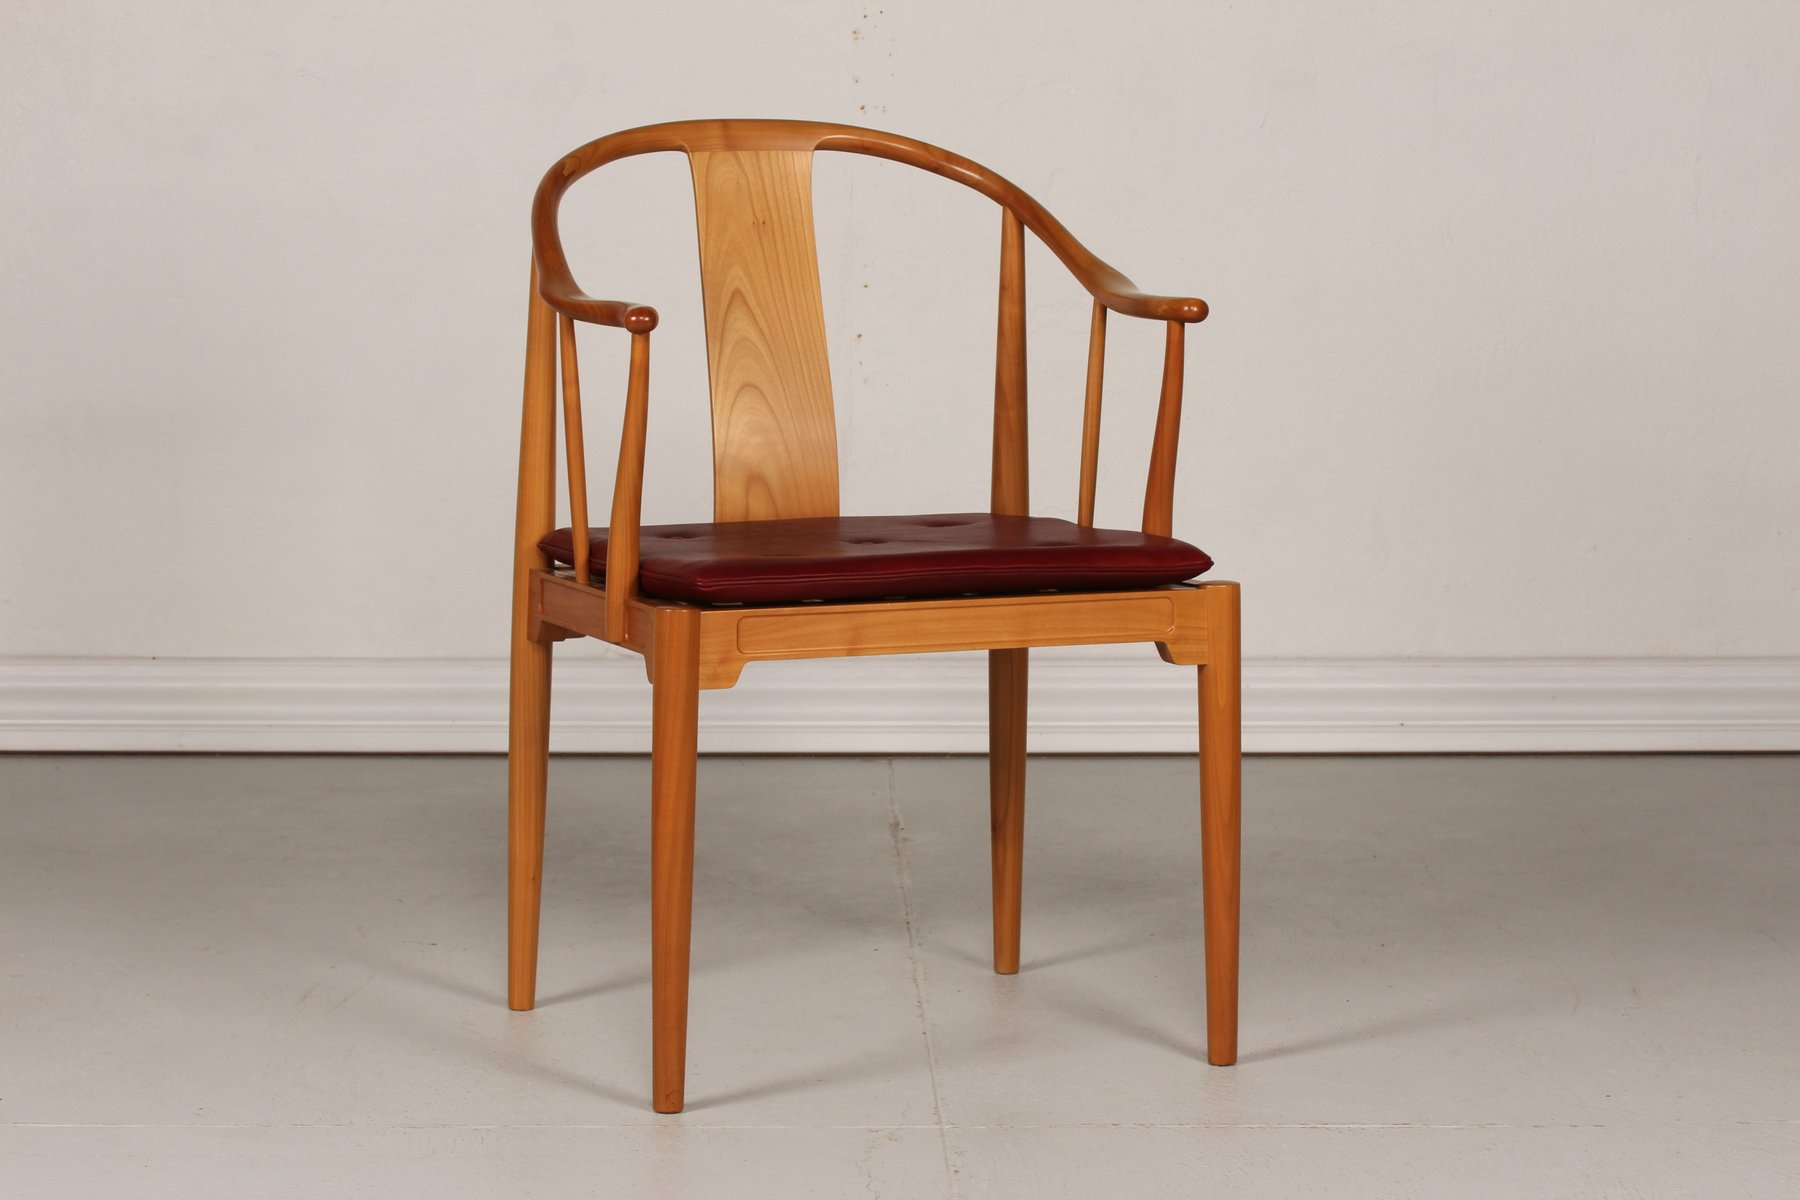 Nice Vintage FH 4283 China Chair By Hans J. Wegner For Fritz Hansen, 1984